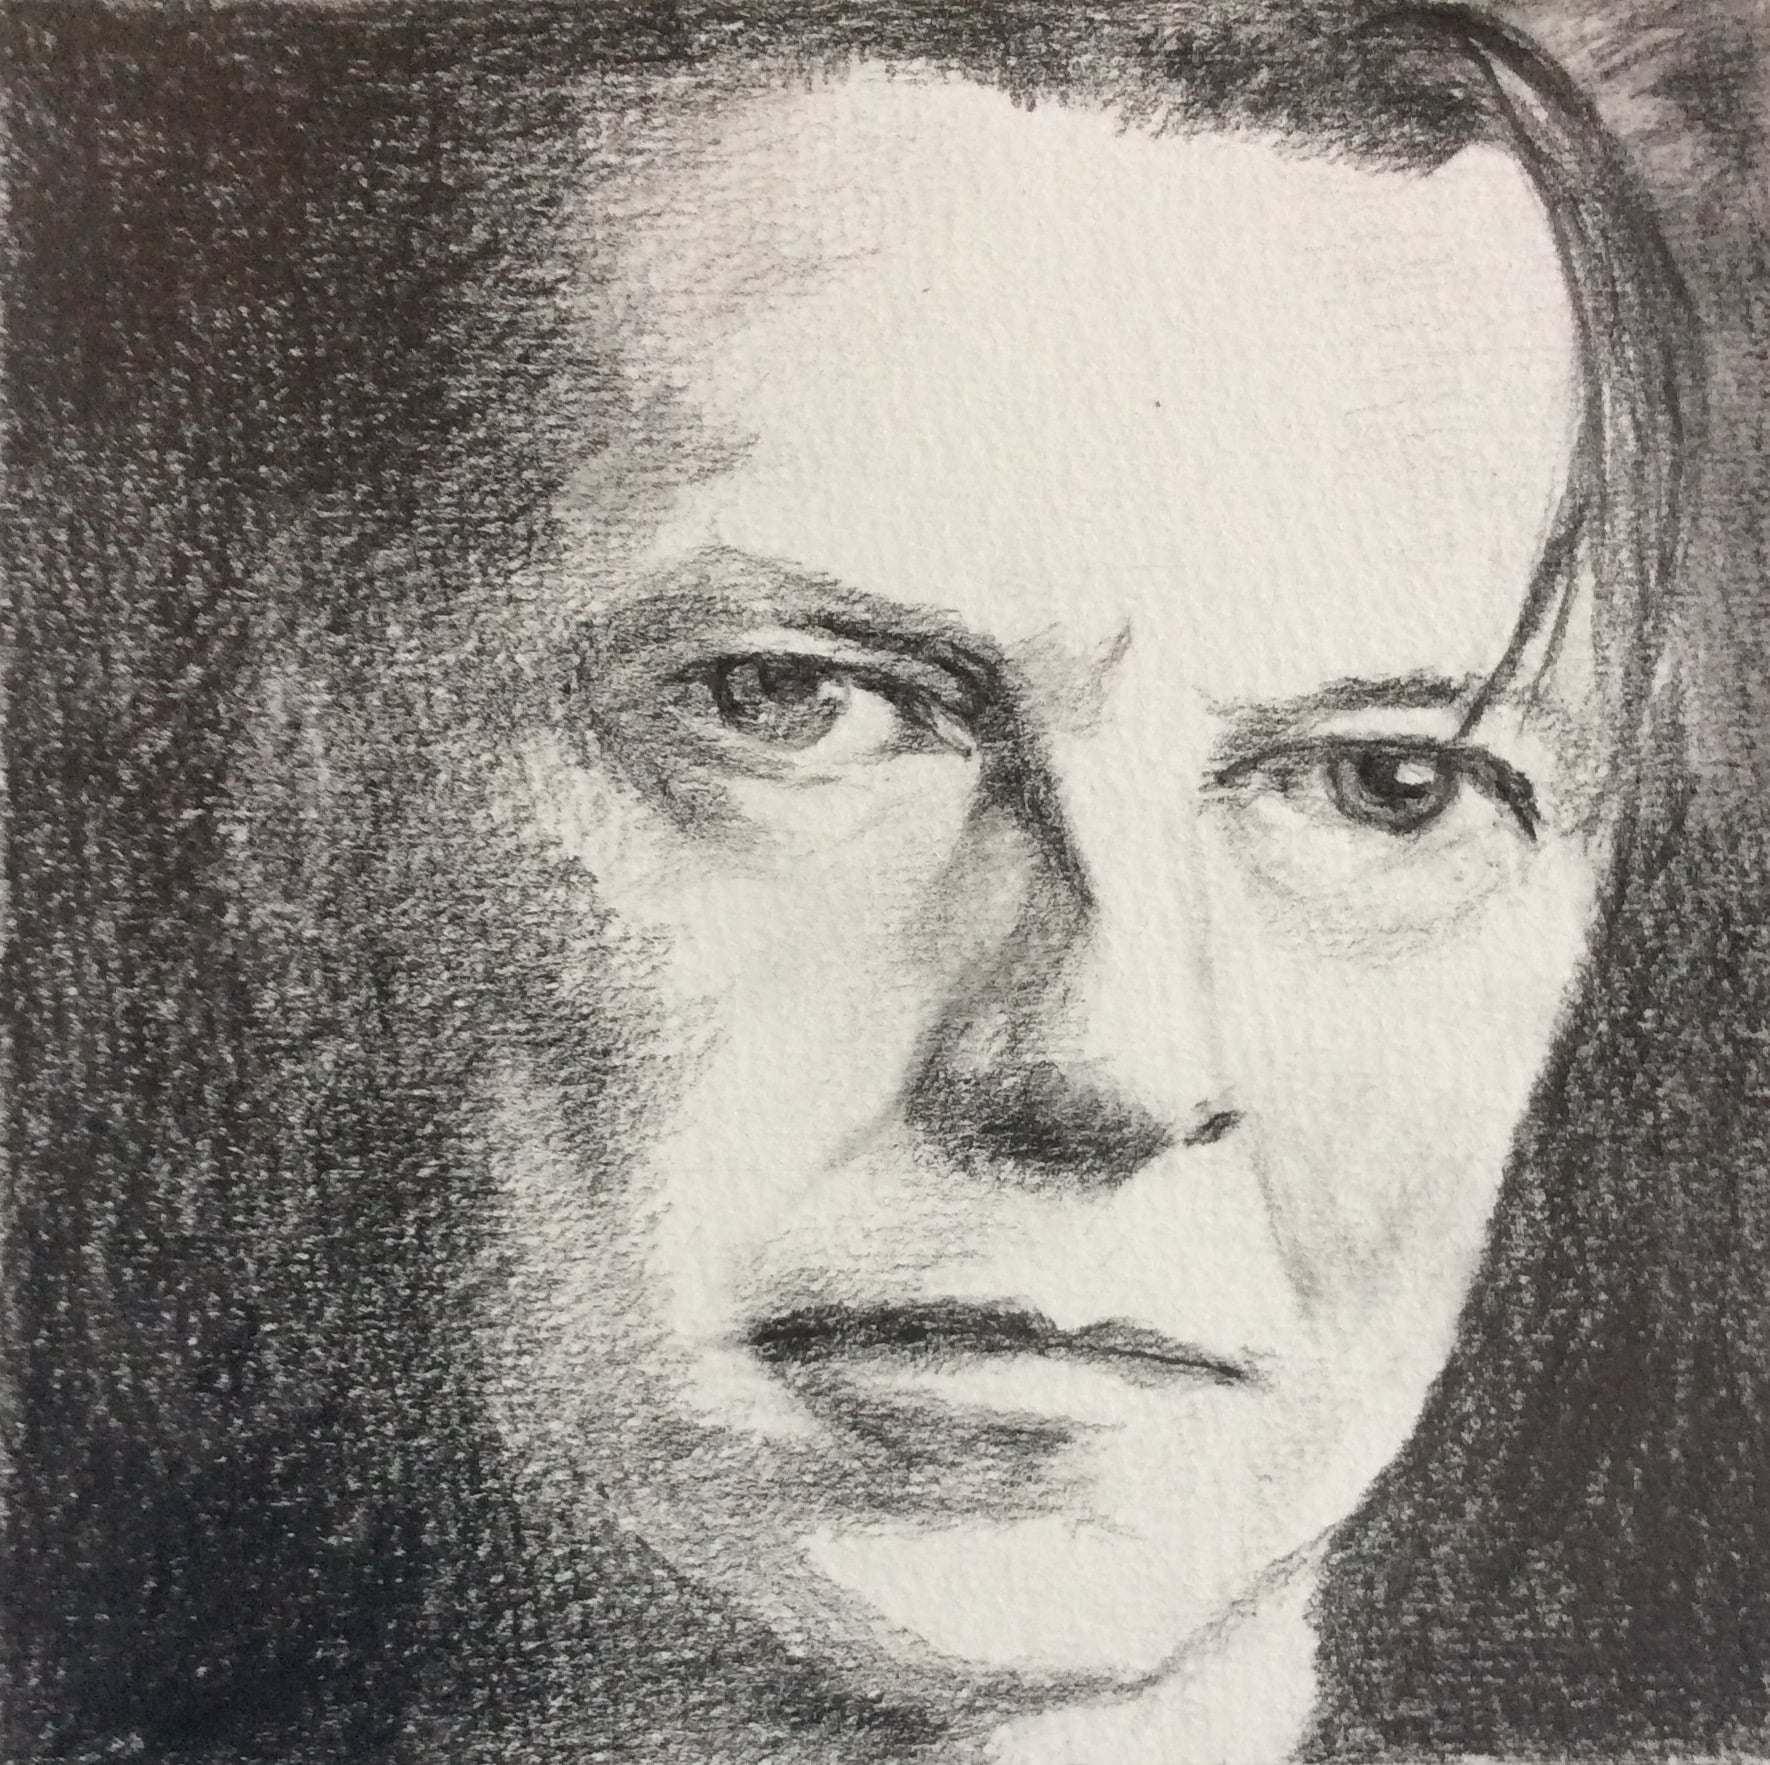 """Goodbye Bowie""   Art journal, pencil, 5.5 X 5.5"""